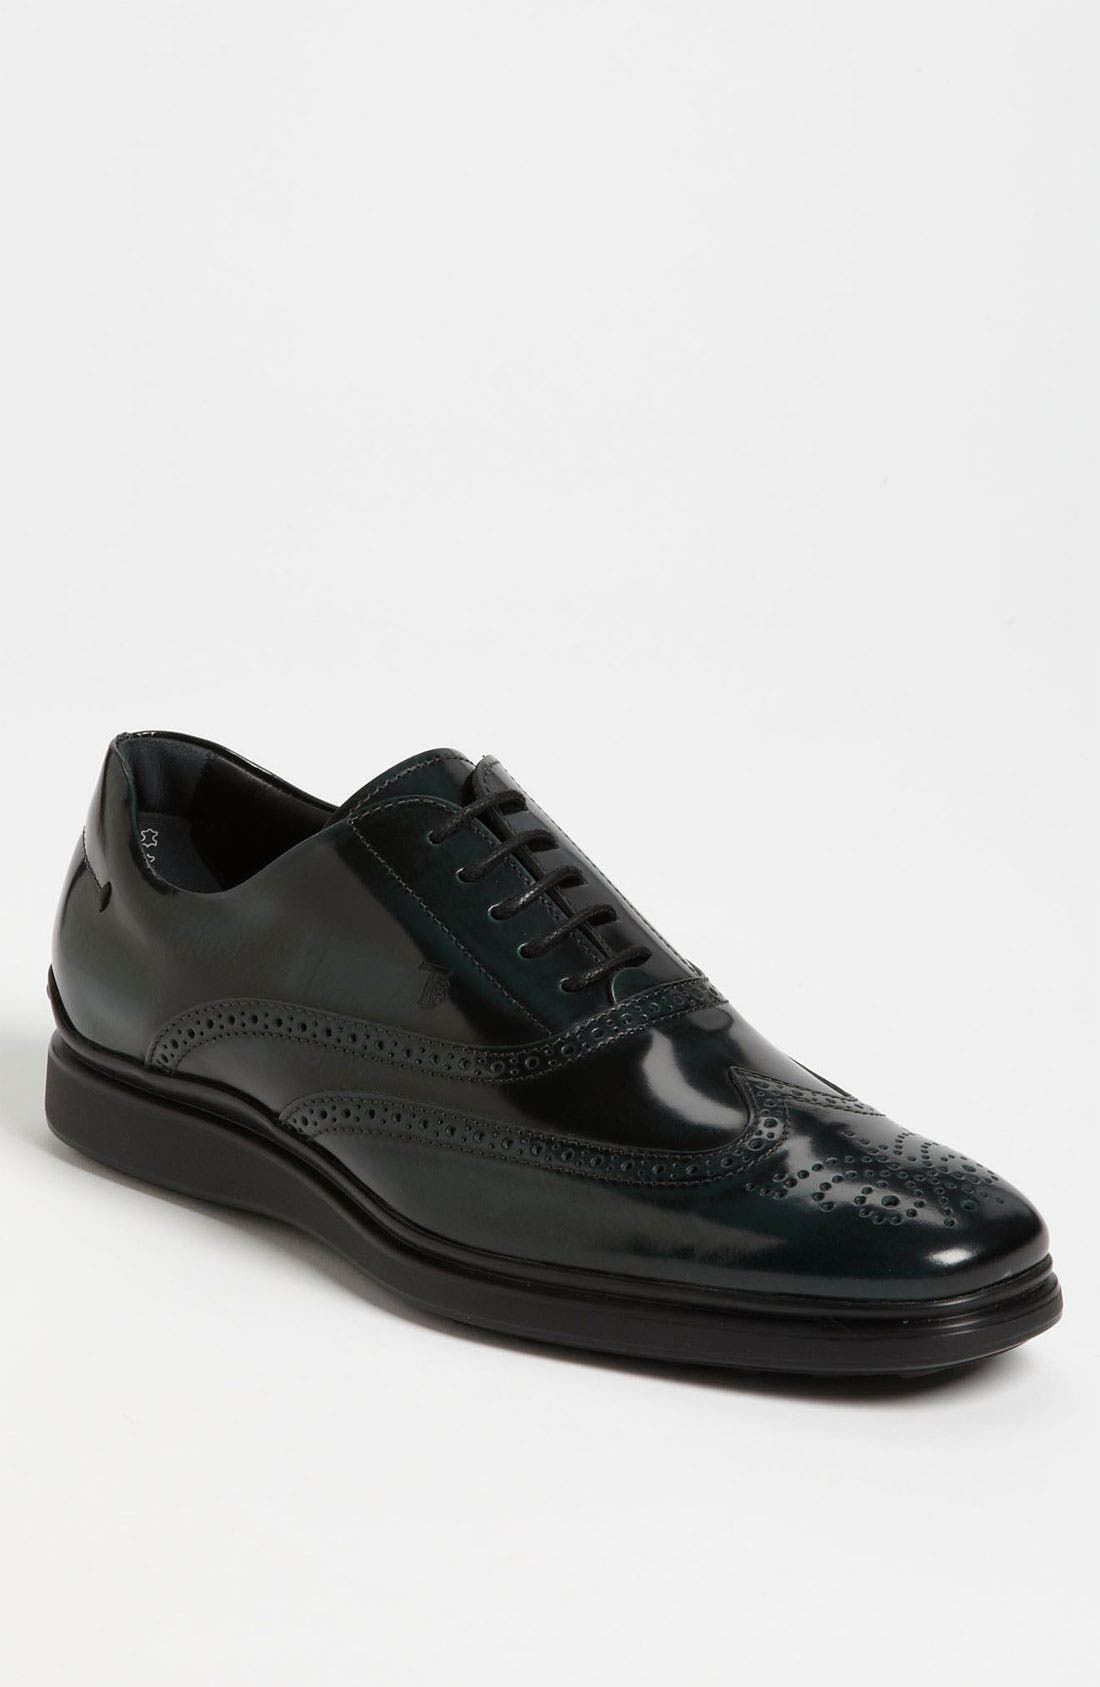 Alternate Image 1 Selected - Tod's 'Francesina' Wingtip